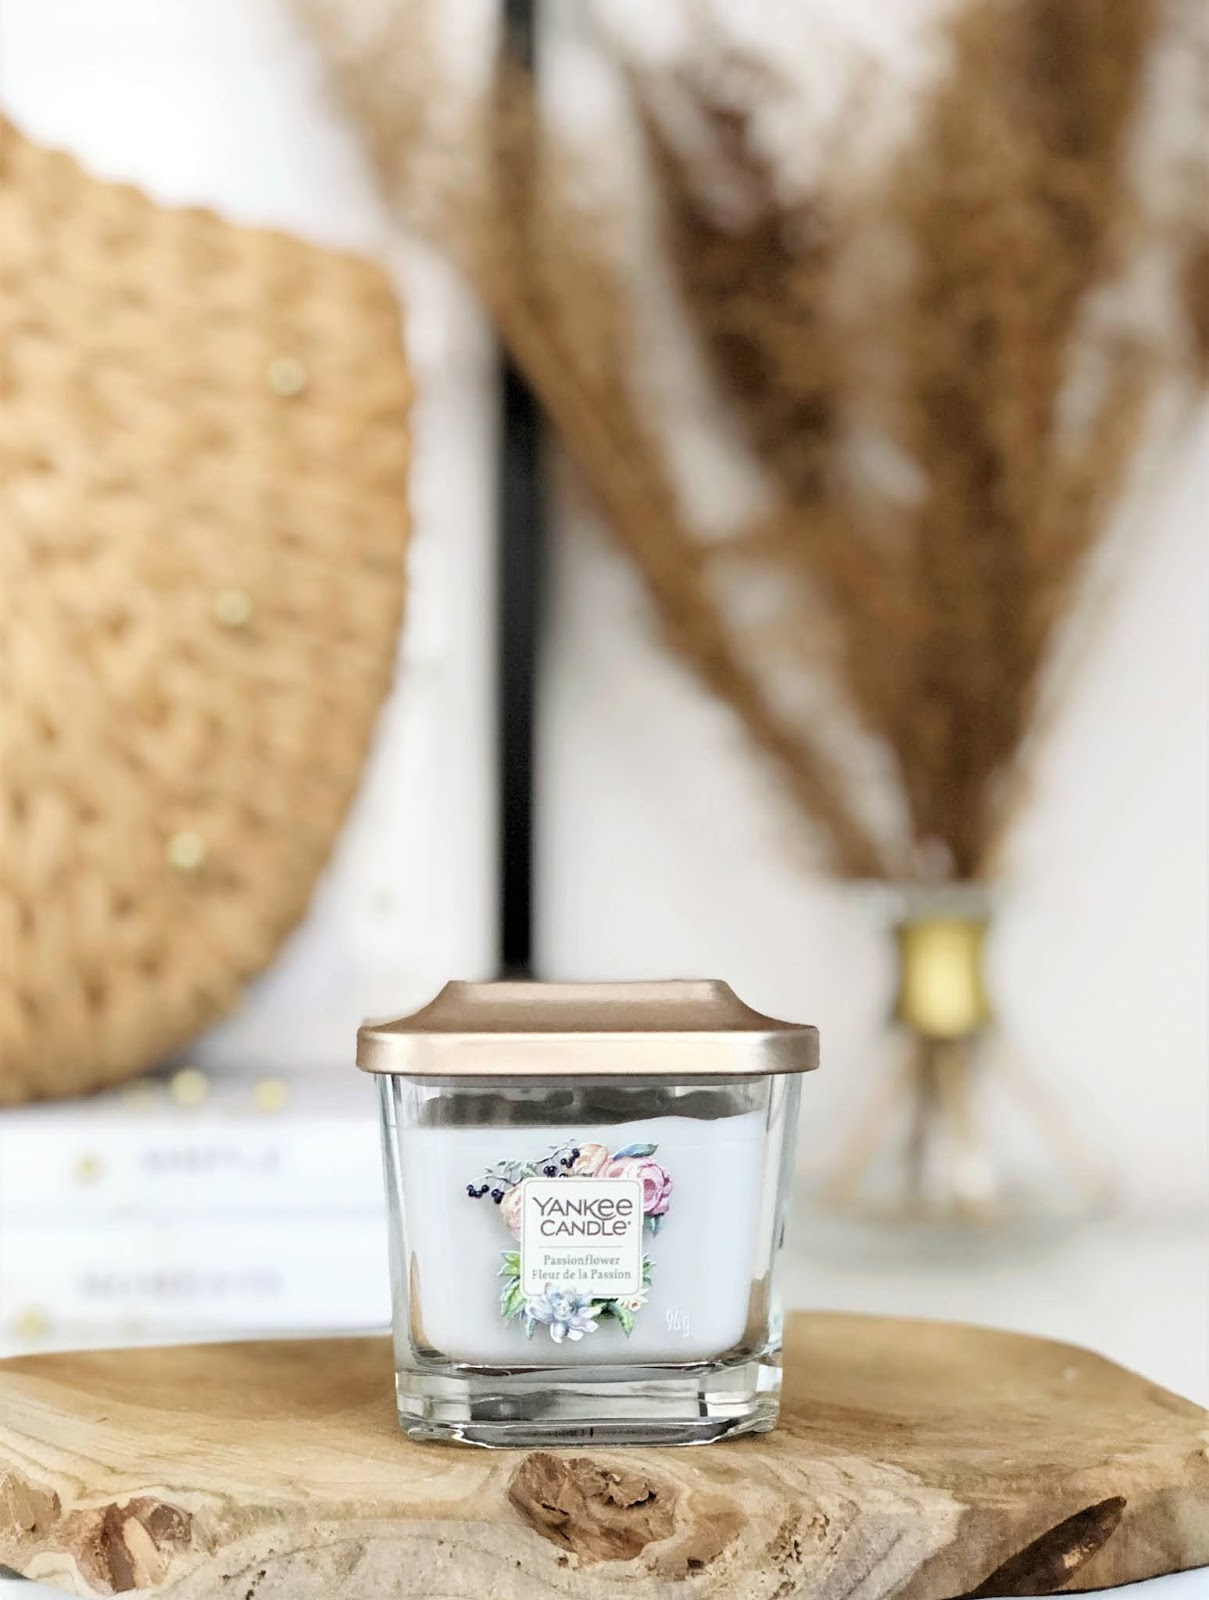 passionflower-yankee-candle